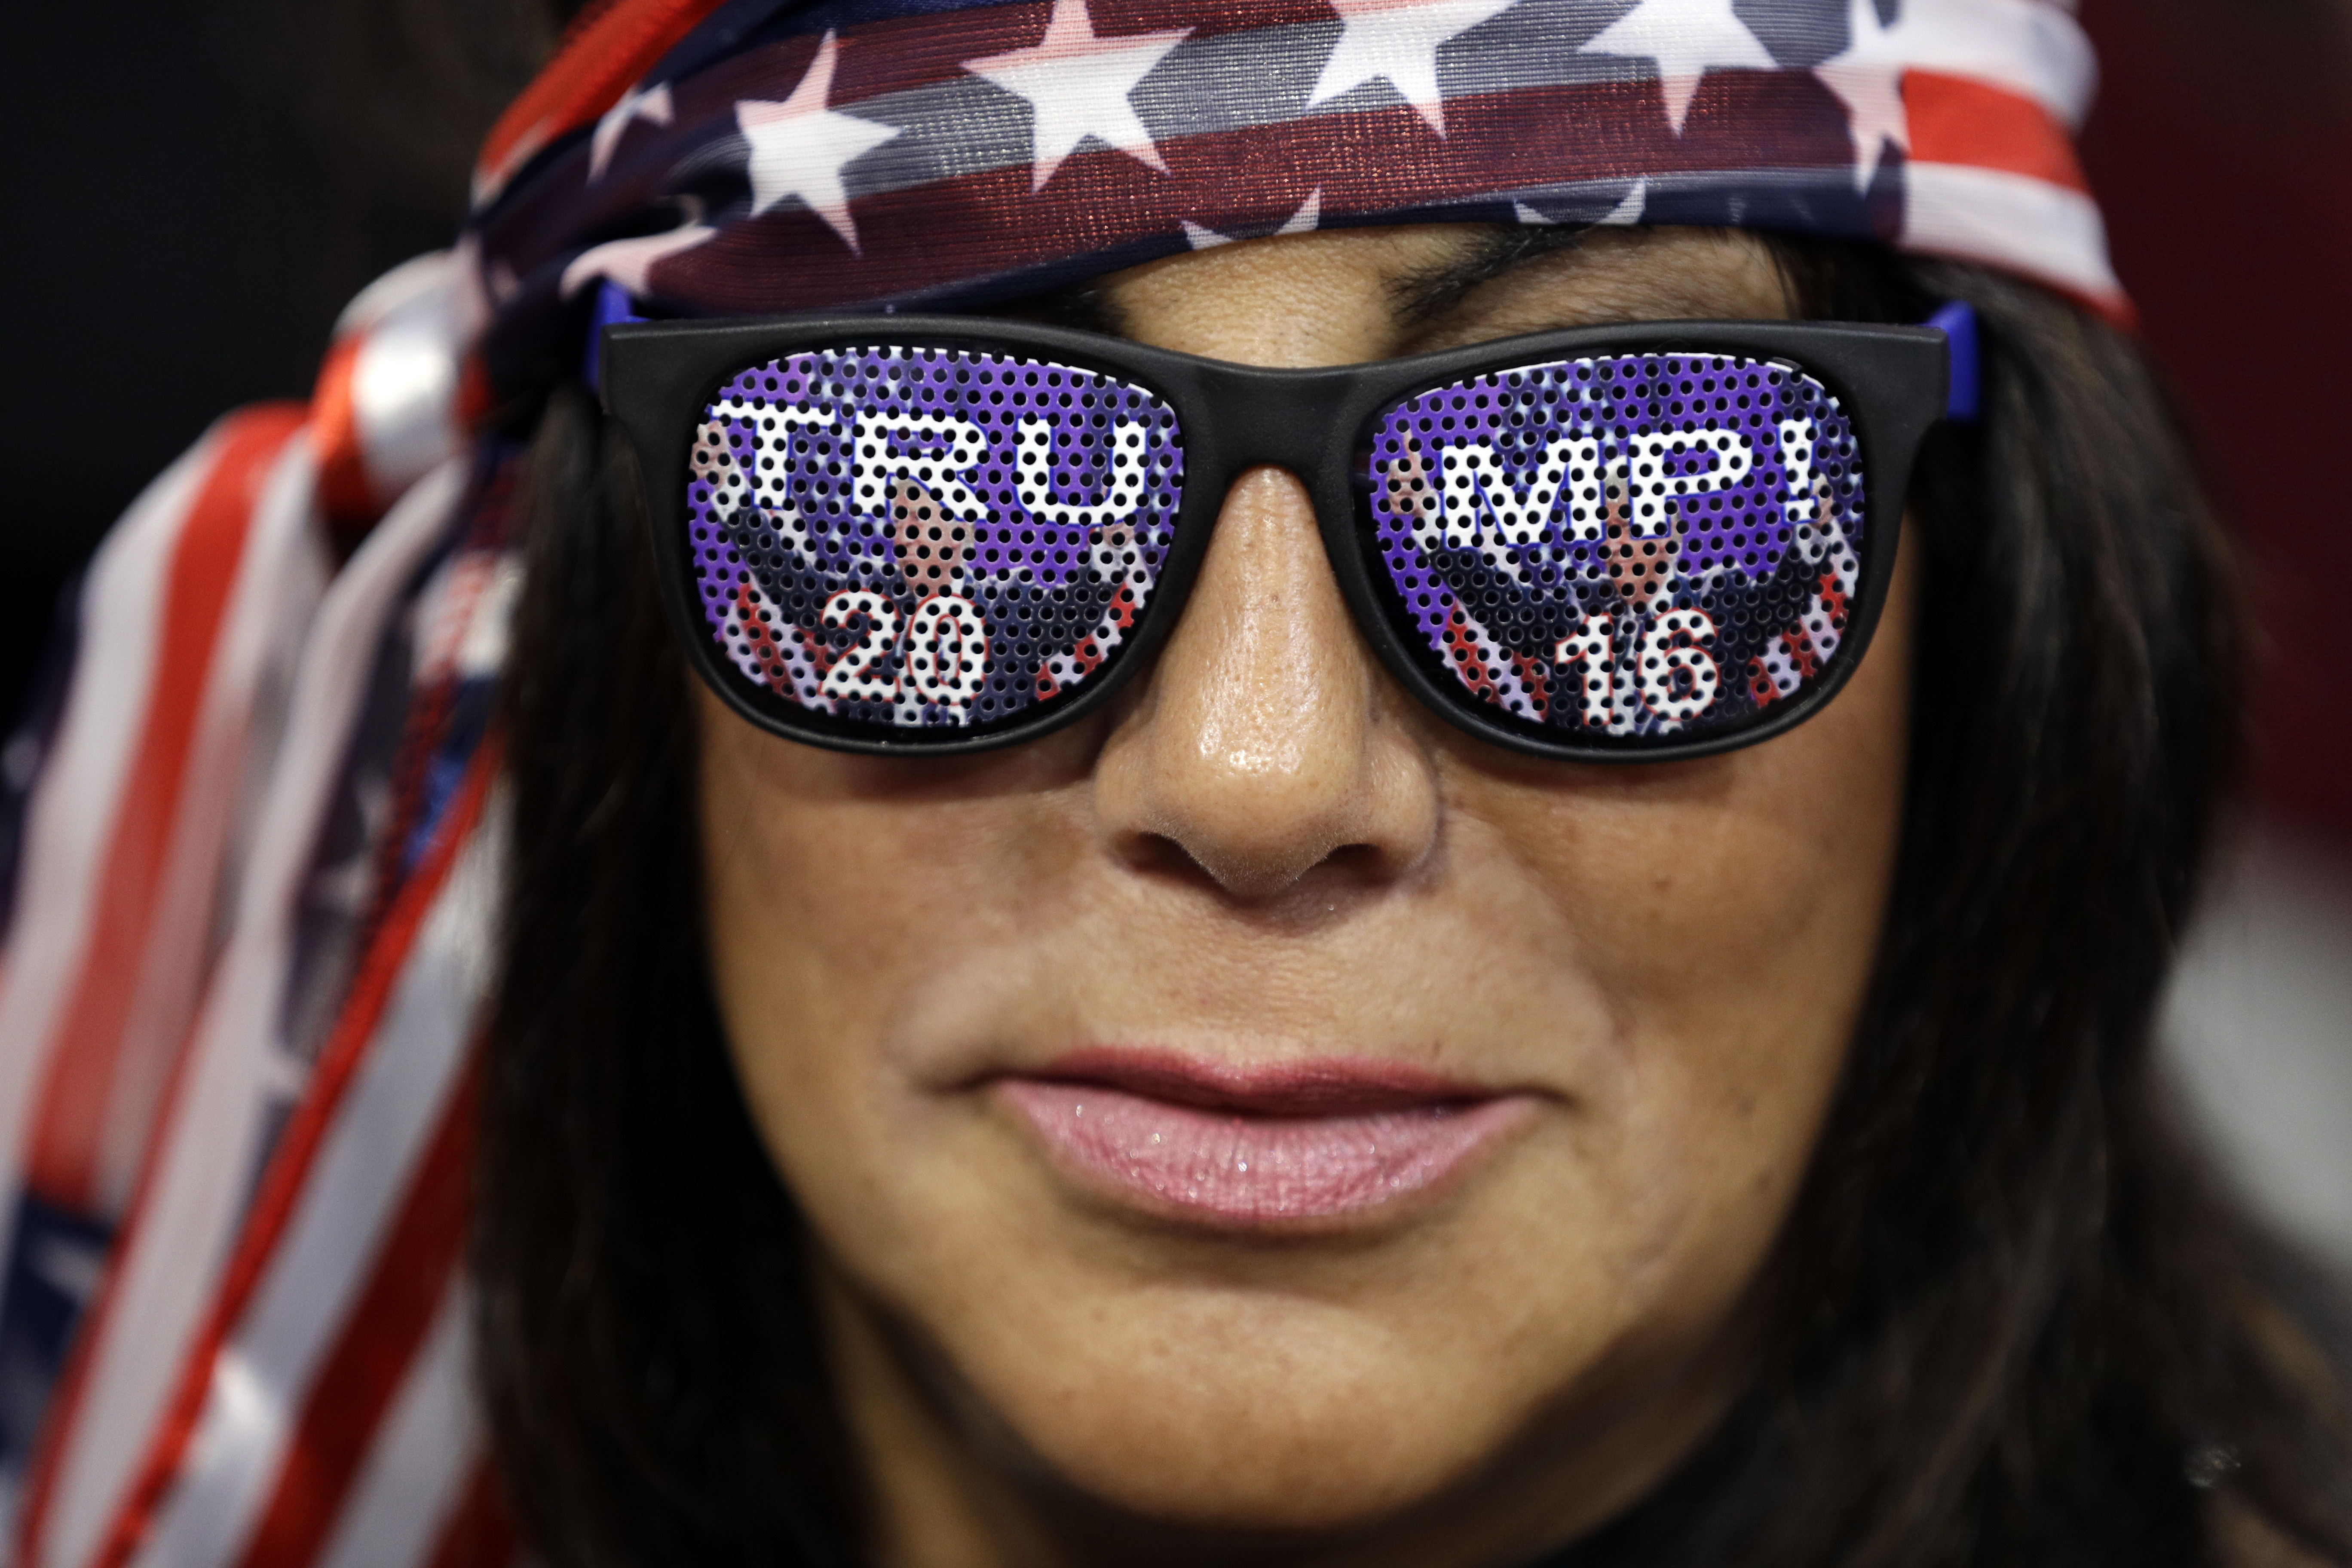 Diane Pennacchio from Montville, N.J., waits for the final day of the Republican National Convention in Cleveland, Thursday, July 21, 2016. (AP Photo/John Locher)